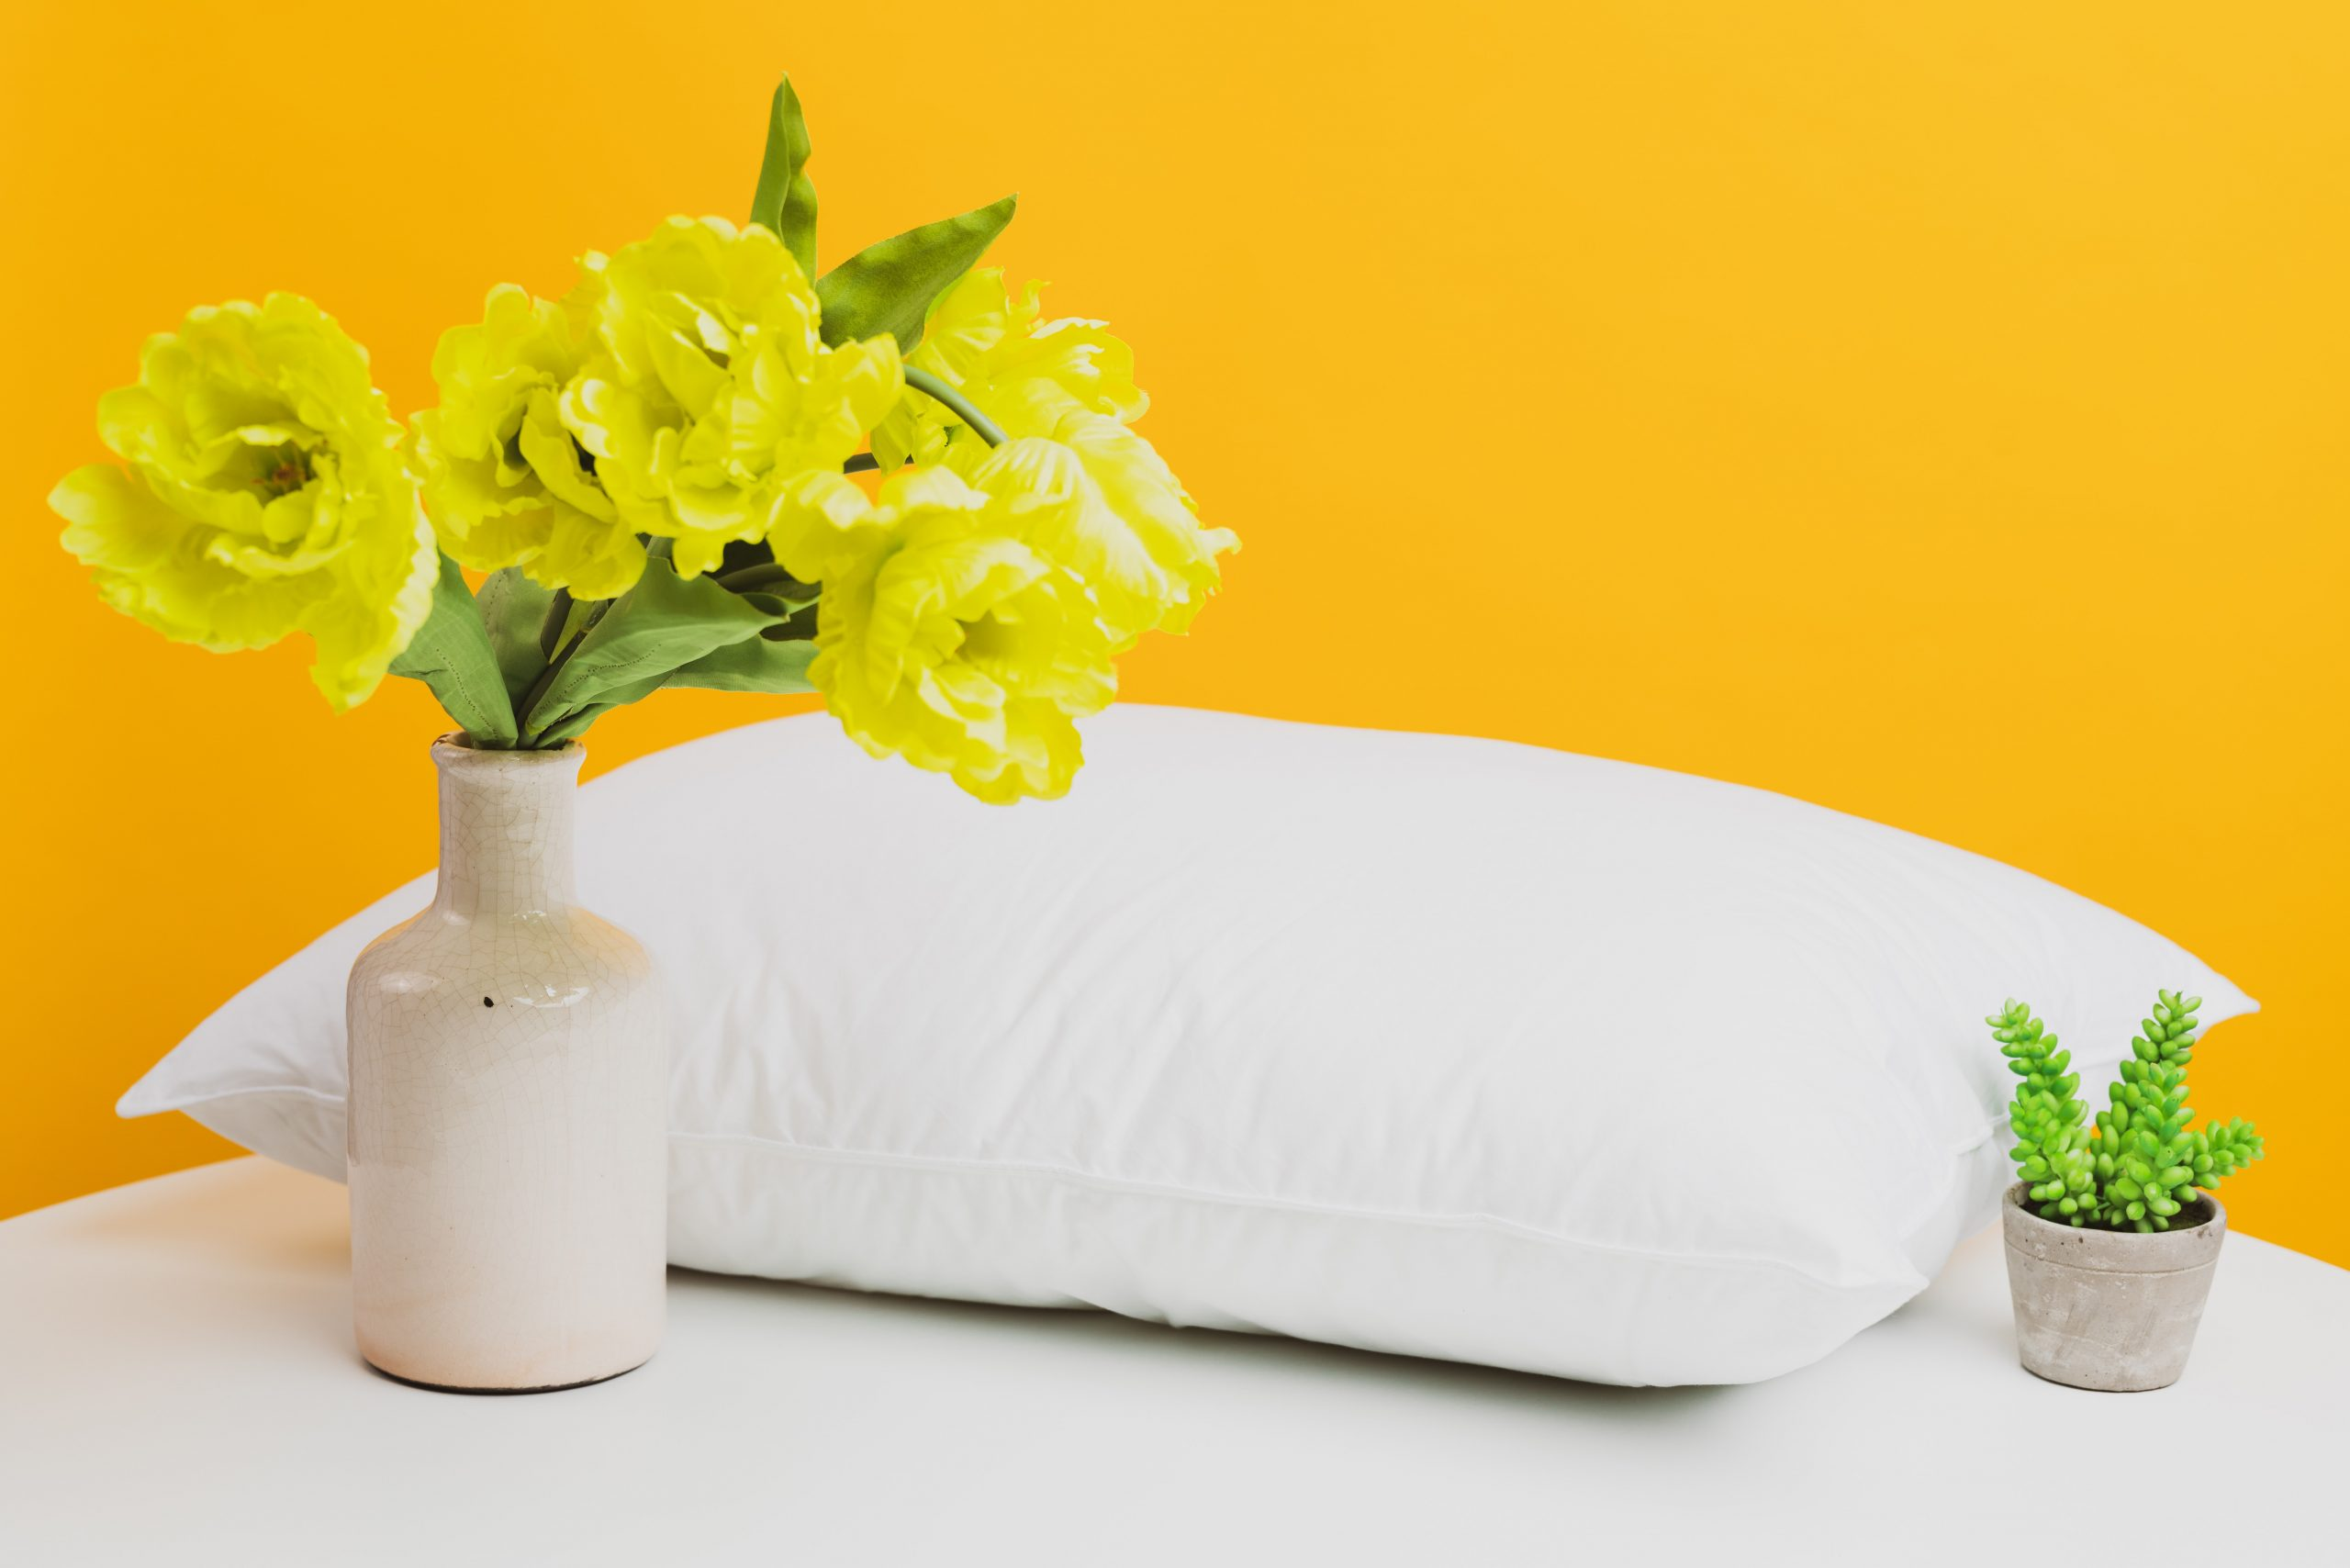 Guide to buying the right pillow for your needs